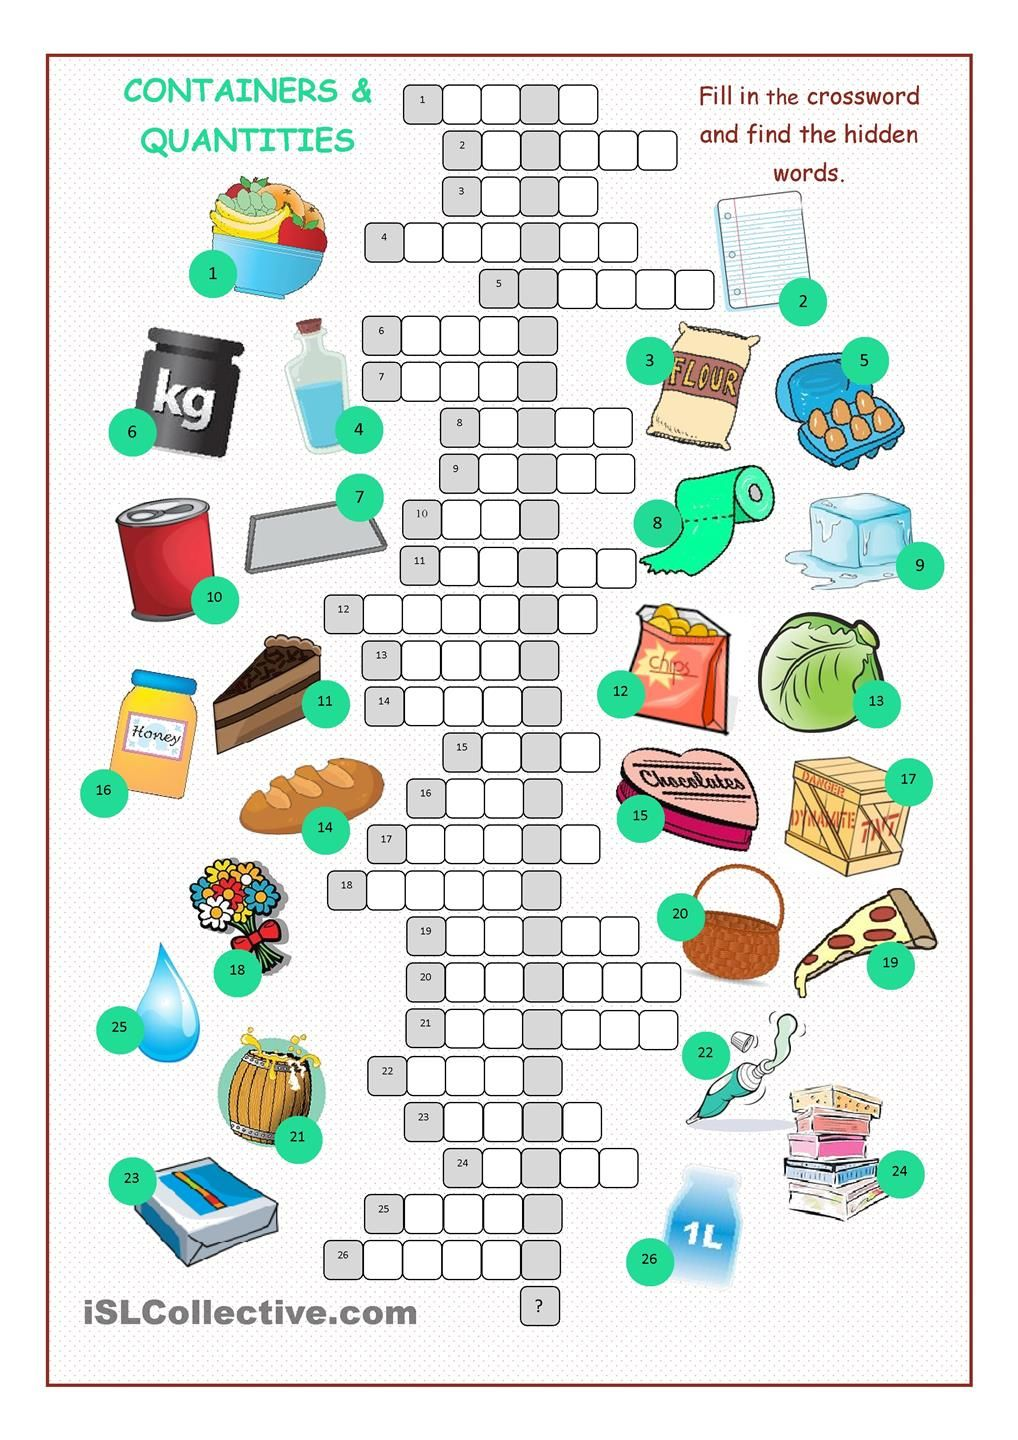 Containers & Quantities Crossword Puzzle | countable and uncountable ...